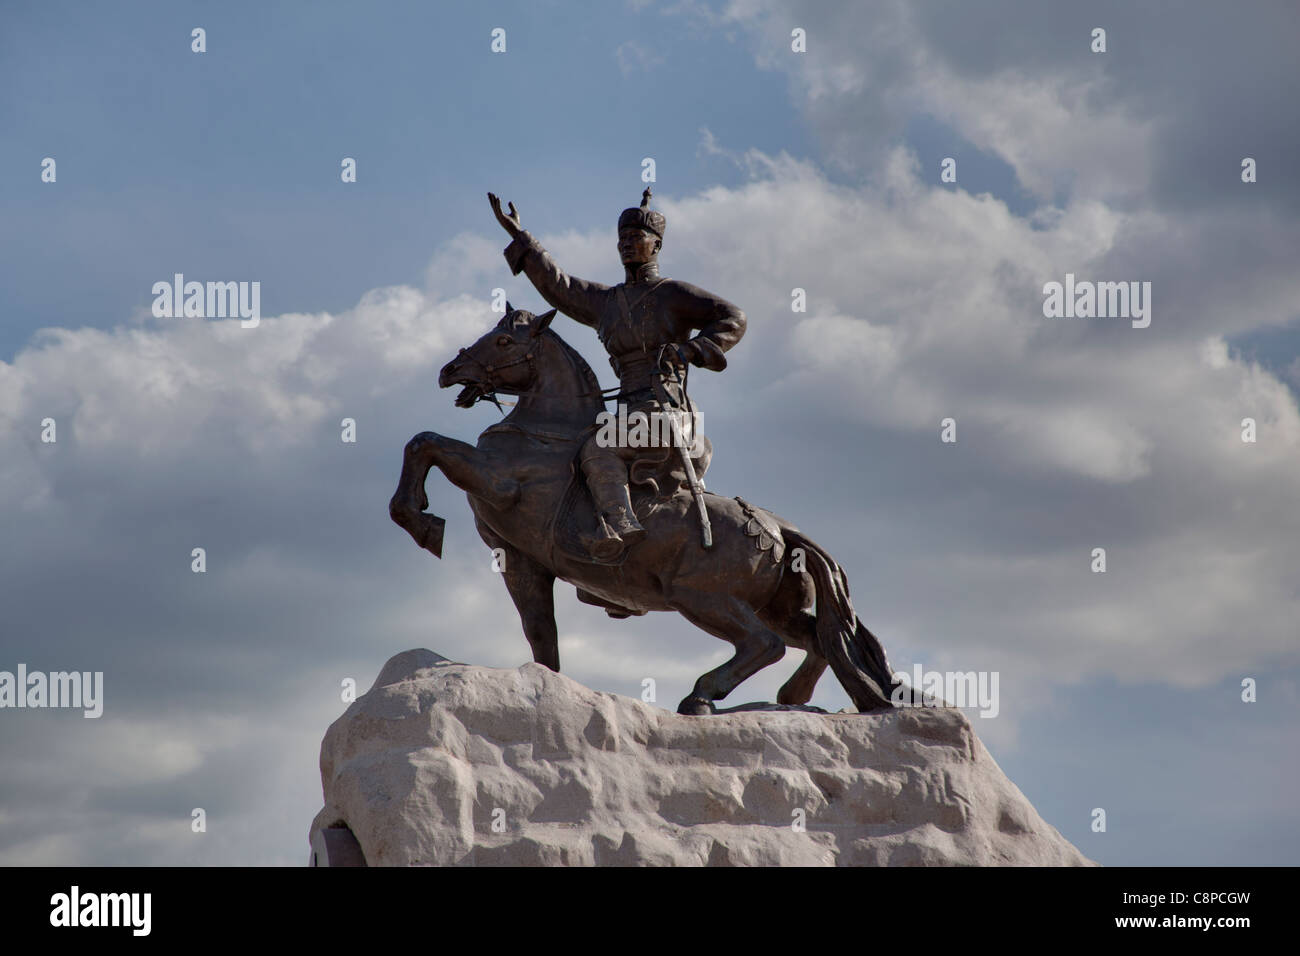 Statue tribute to Damdin Sukhbaatar, a Mongolian hero in the revolution that threw out the Chinese rulers. - Stock Image